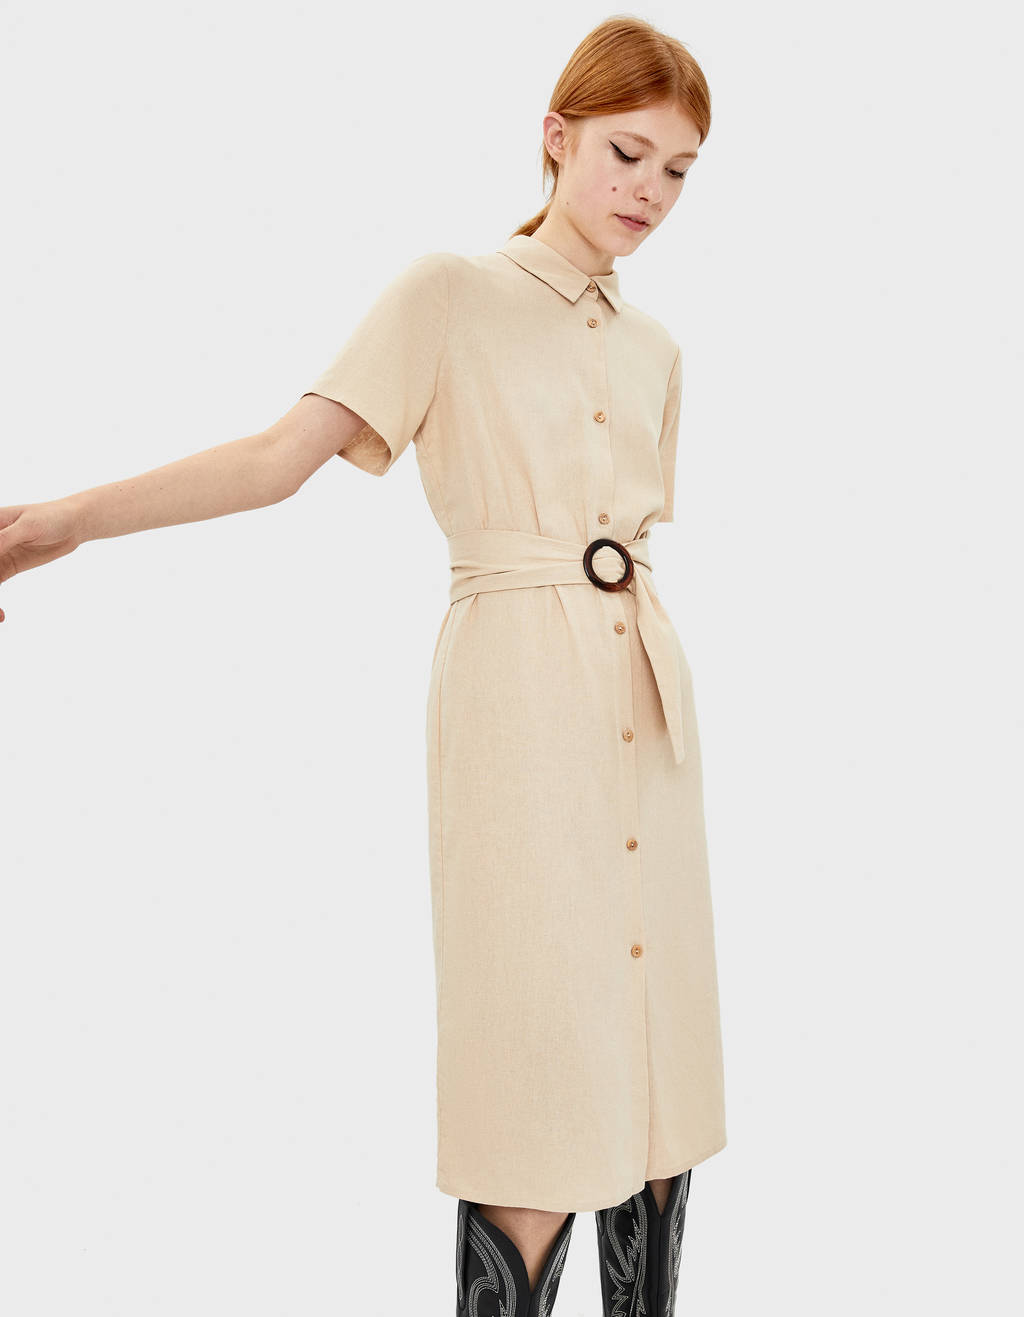 Dress with ring belt